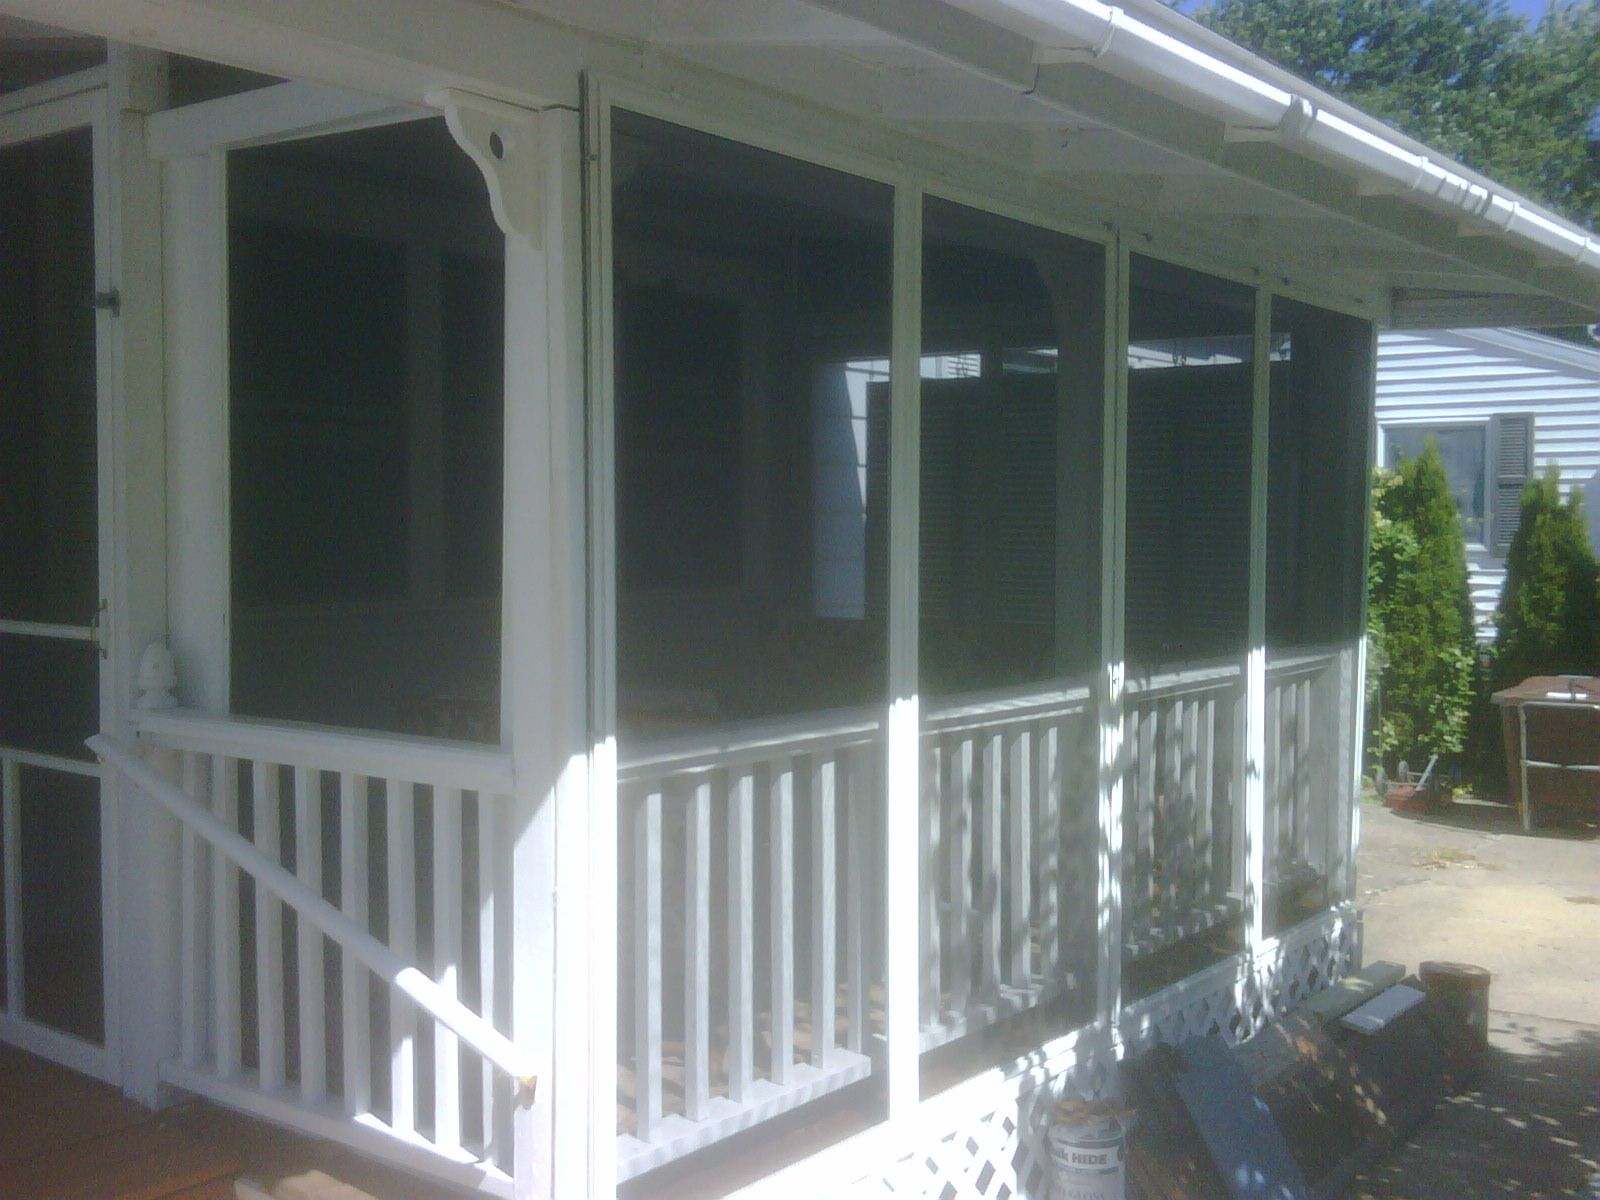 My Repurposed Screened Porch Made From Reused Sliding Door Panels